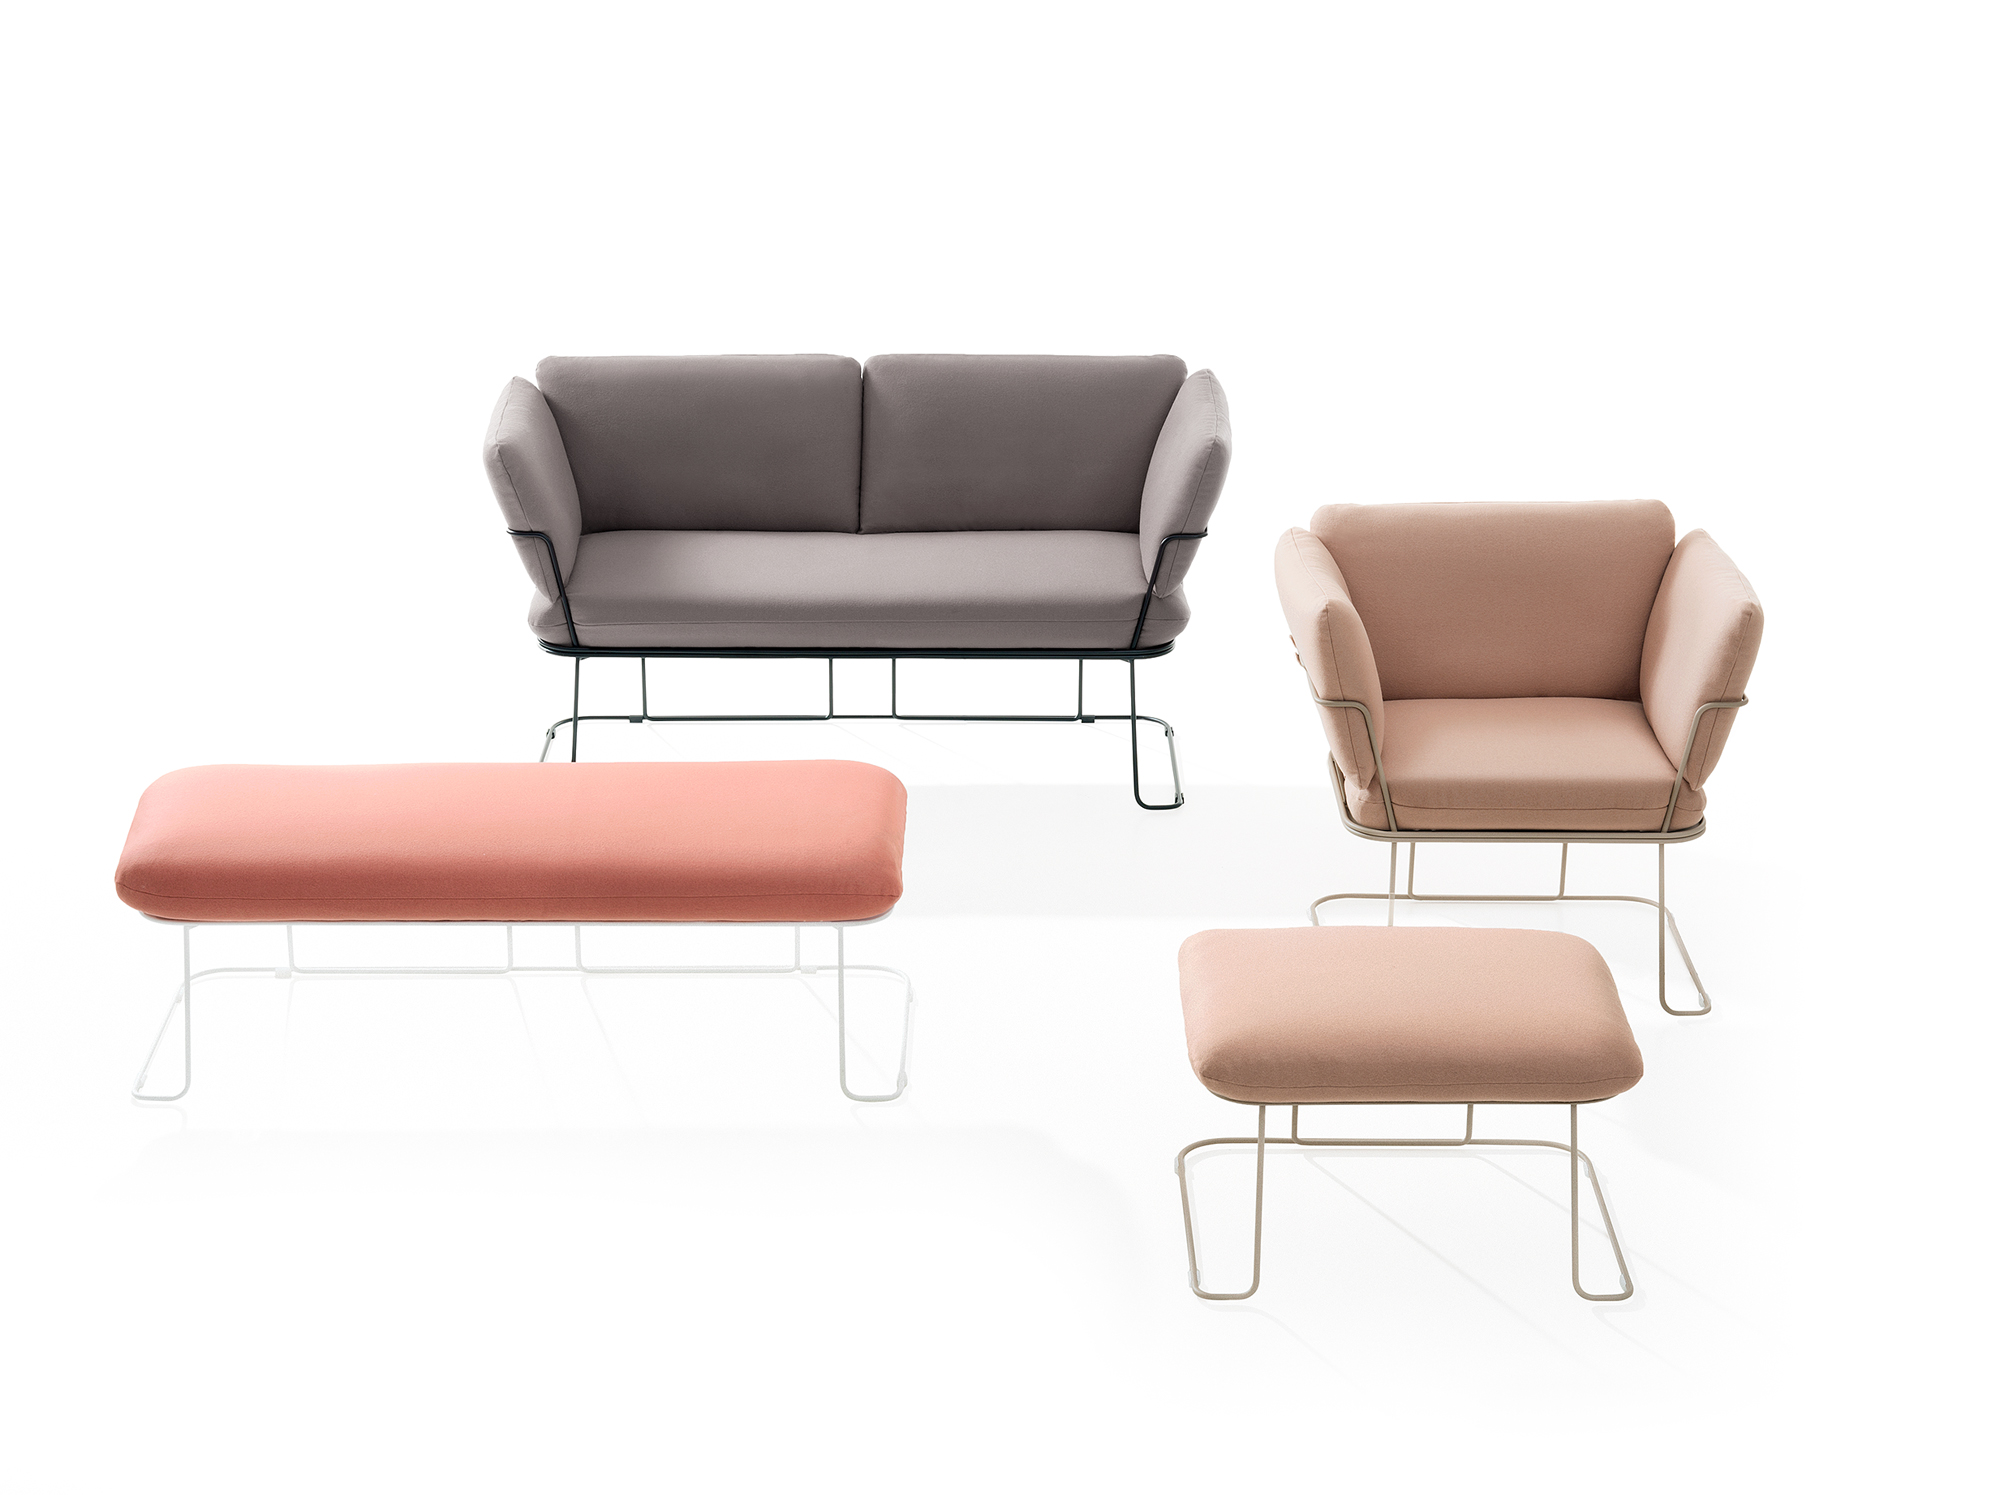 Merano chair and sofa from B-Line